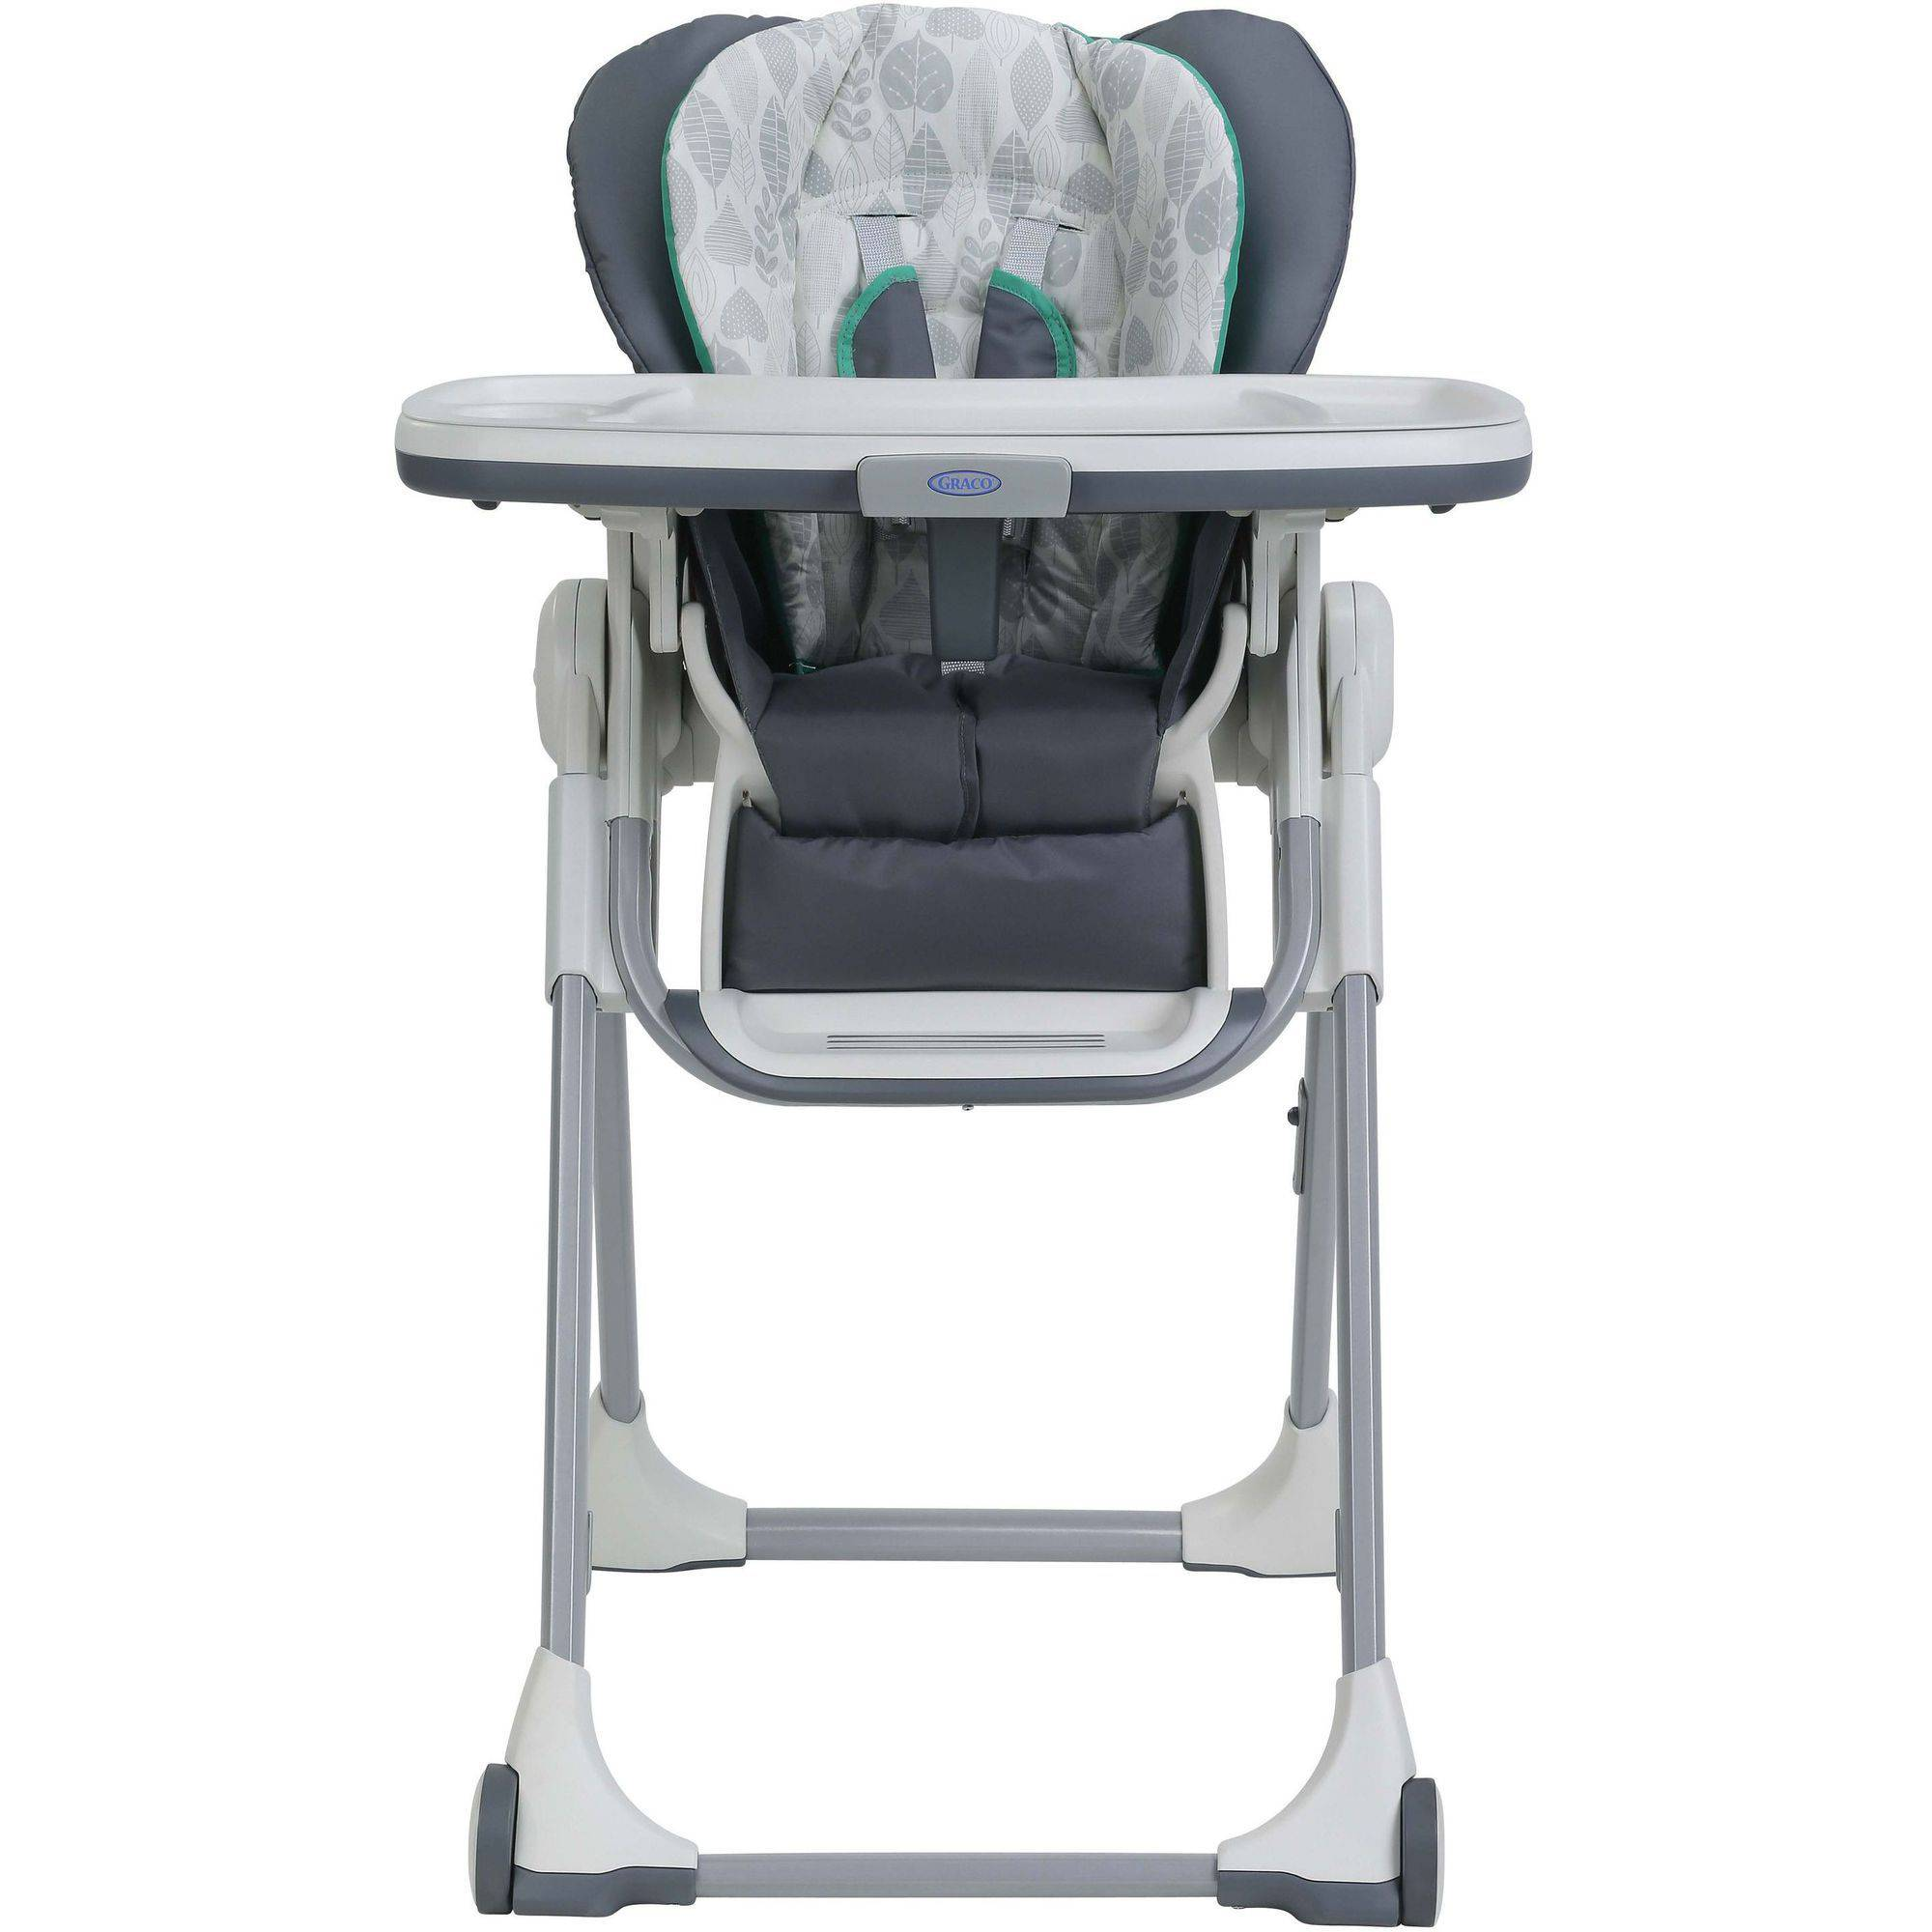 Graco SwiftFold High Chair Briar Walmart